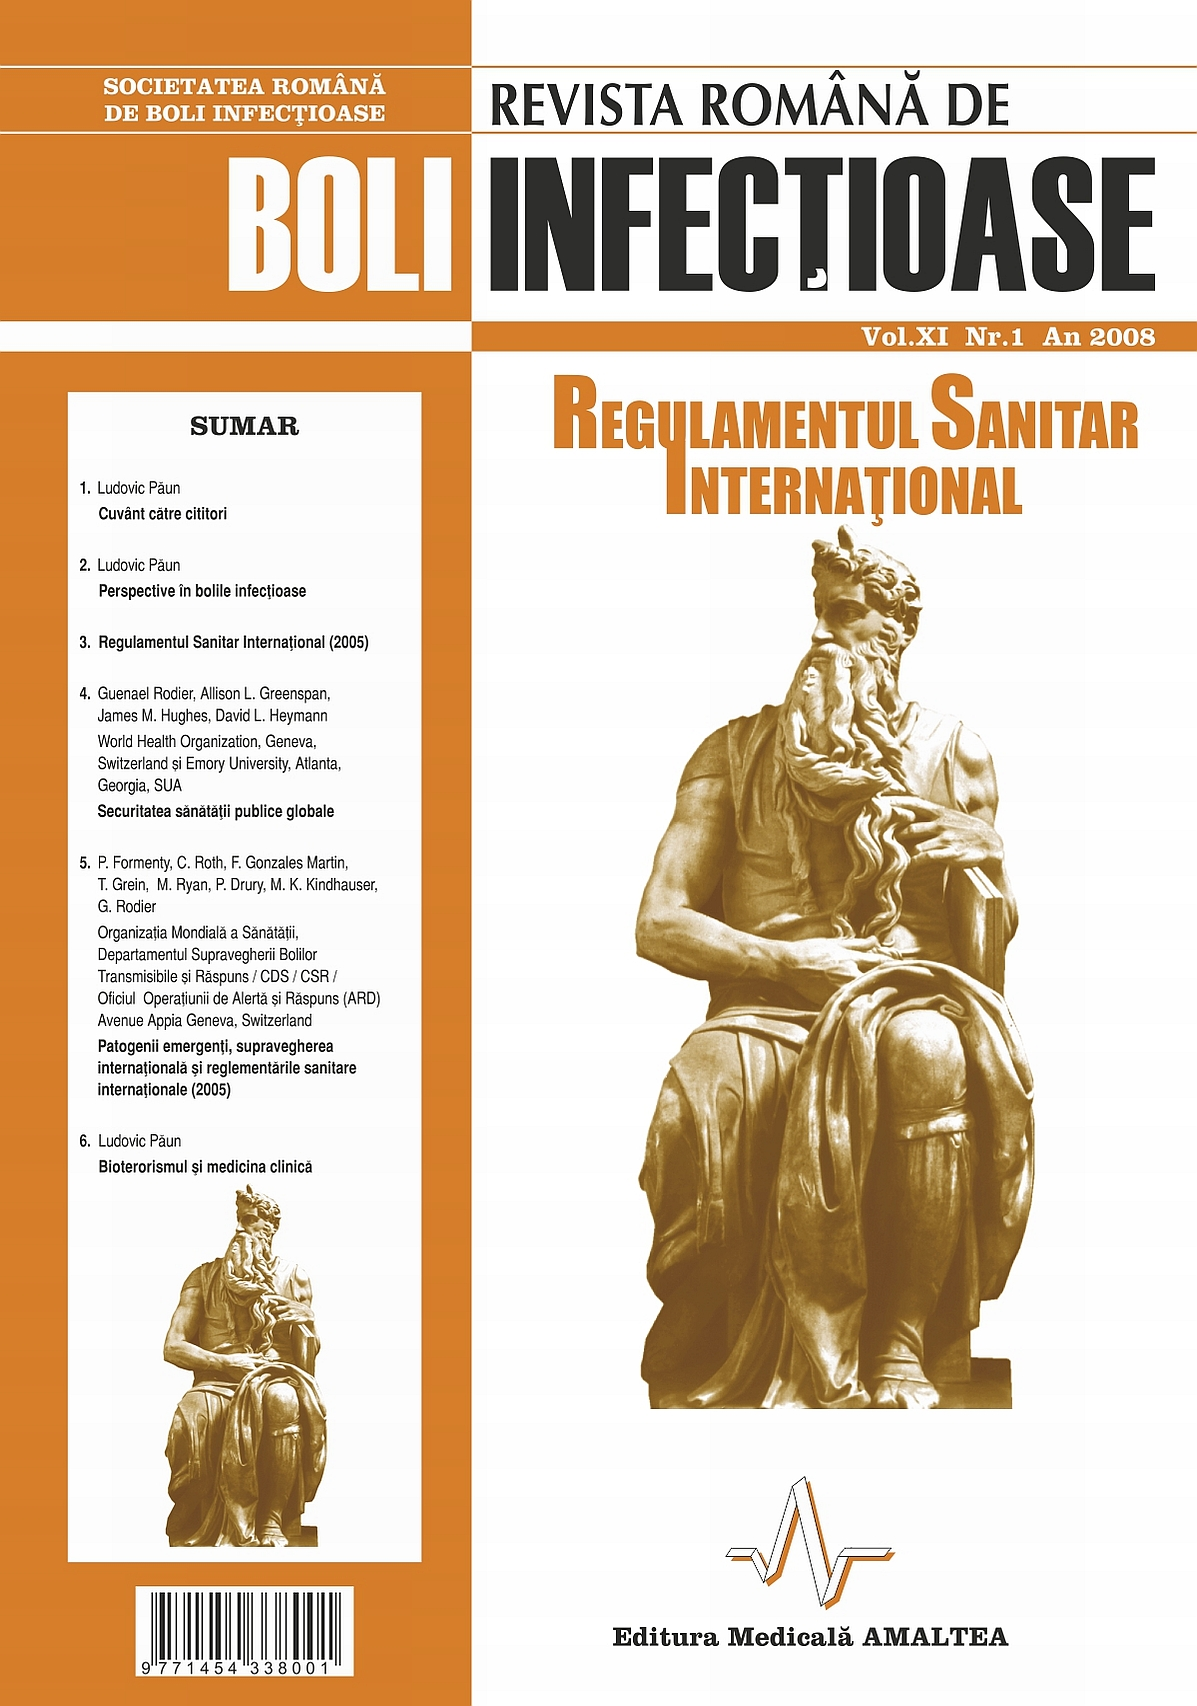 Revista Romana de Boli Infectioase | Vol. XI, No. 1, 2008